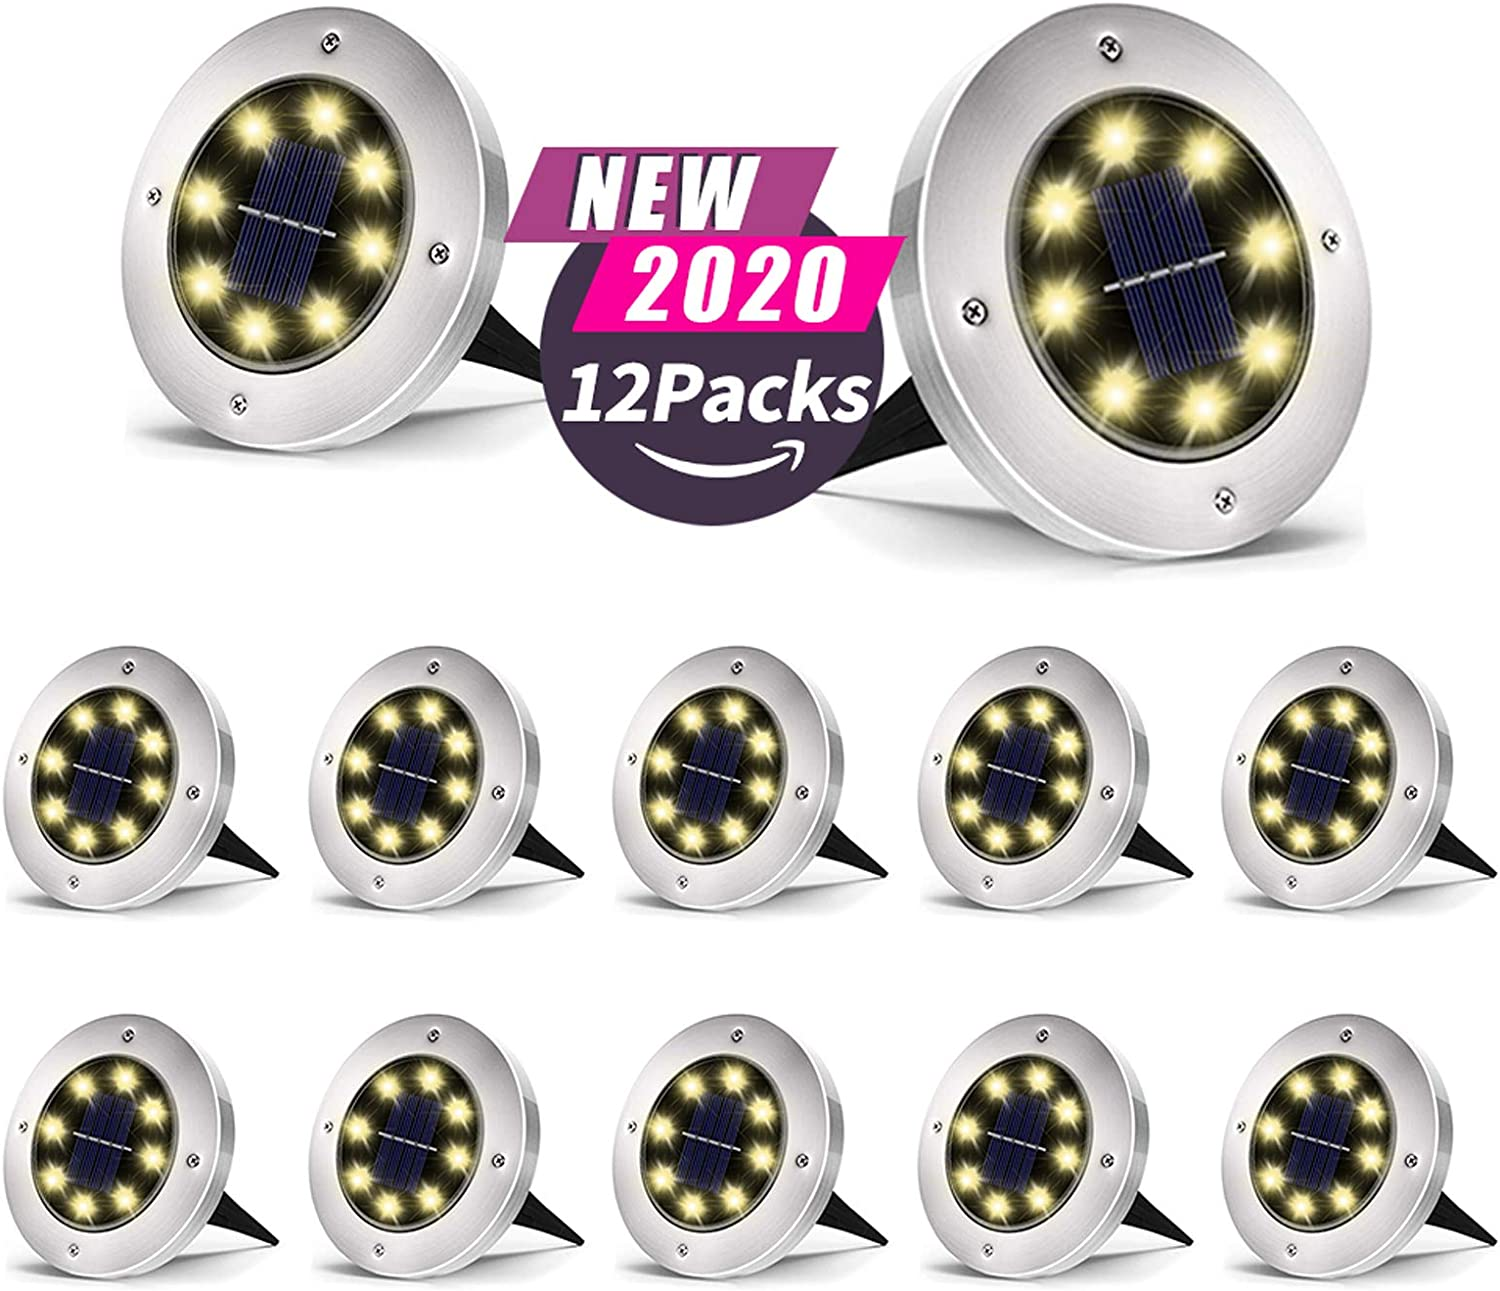 Amazon Promo Code for 8 LED Warm Light Outdoor Solar Disk Lights